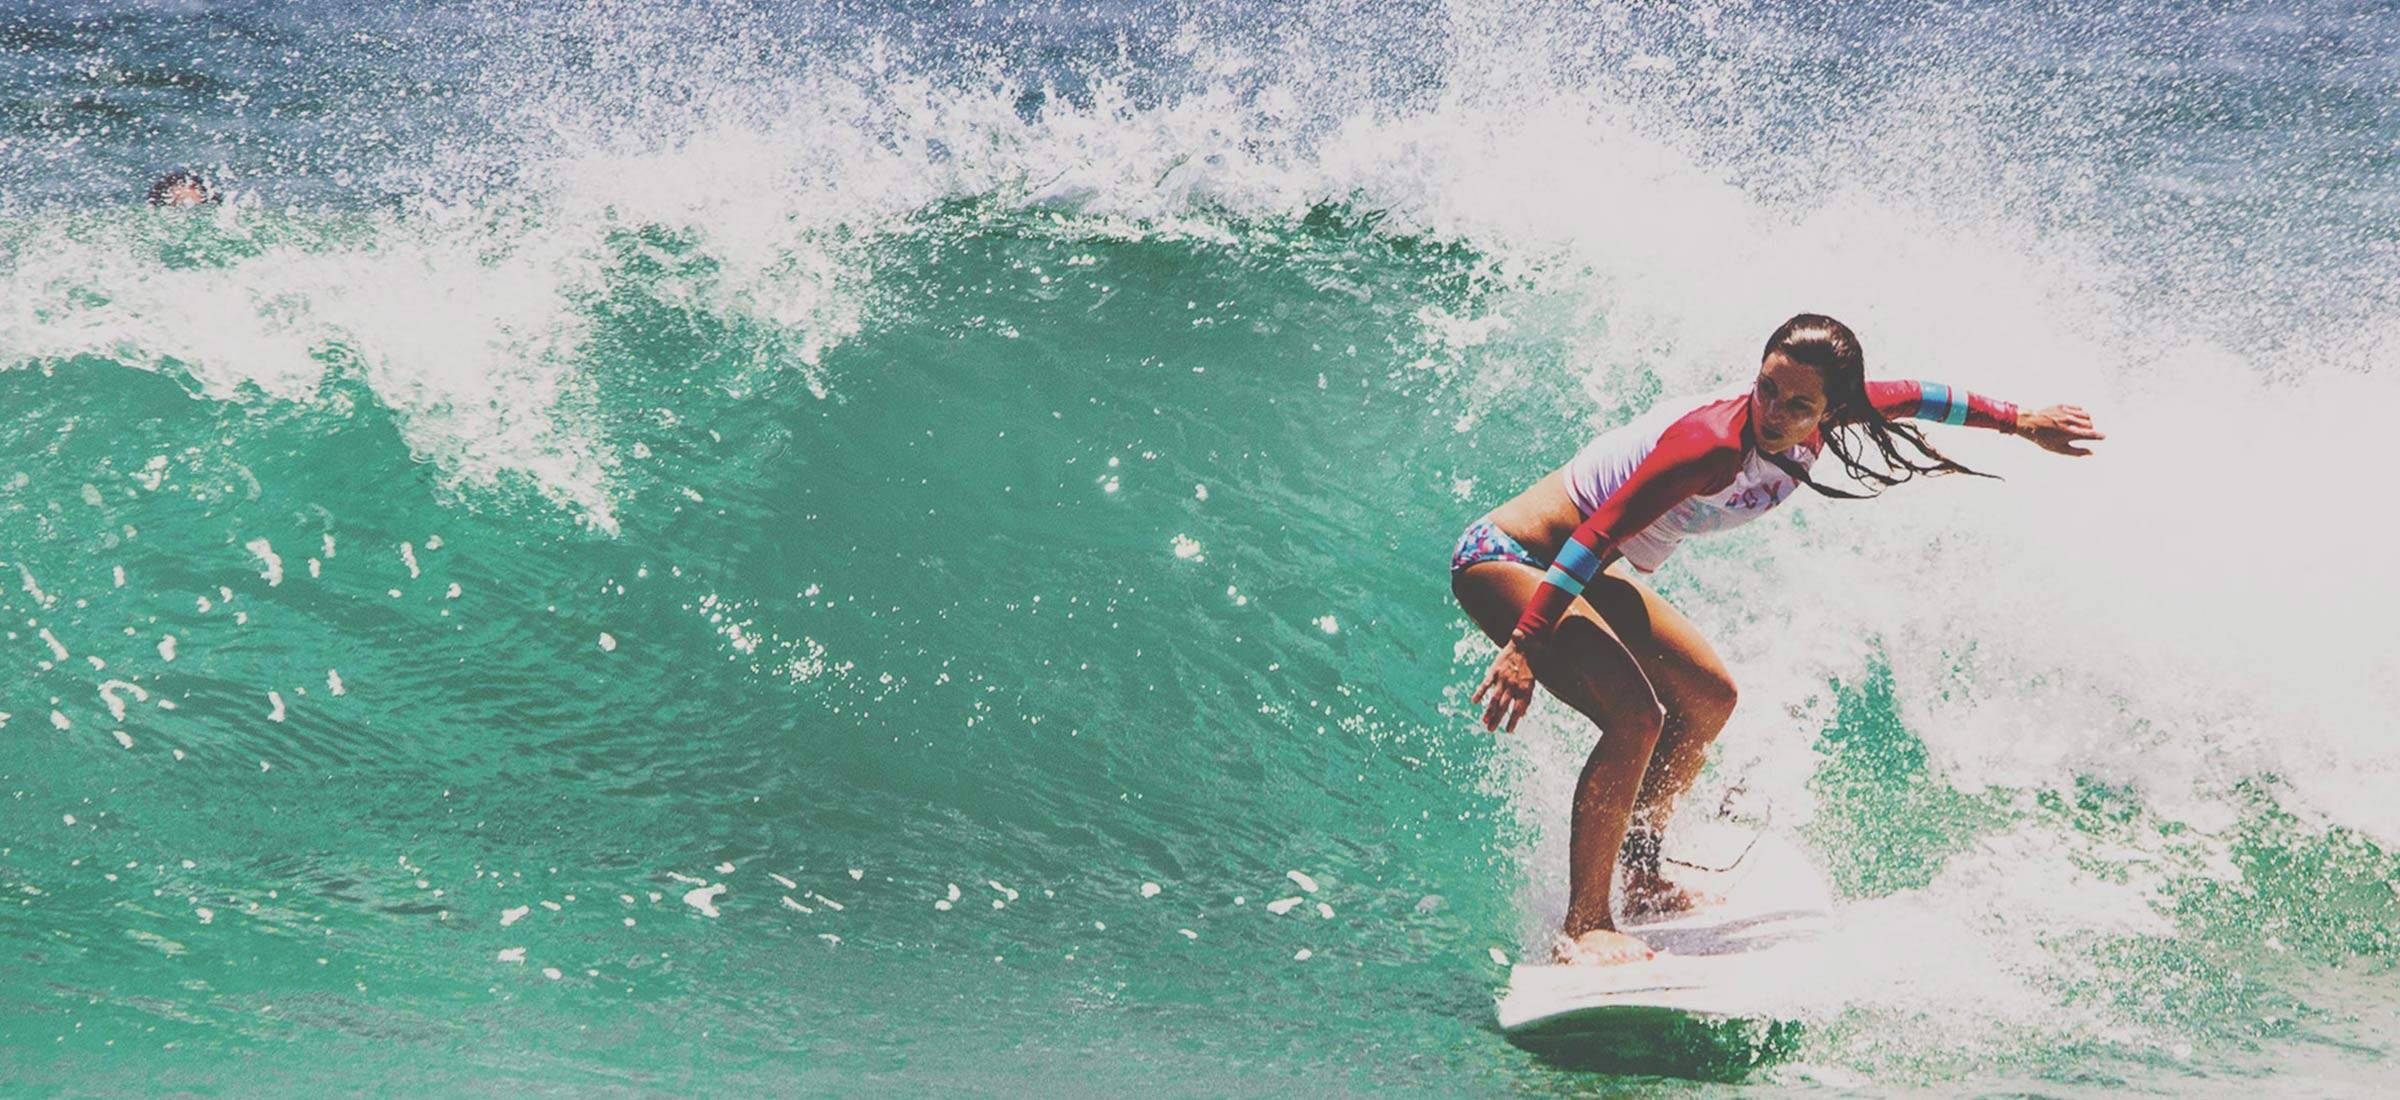 best-surf-spots-to-learn-nicaragua-girl